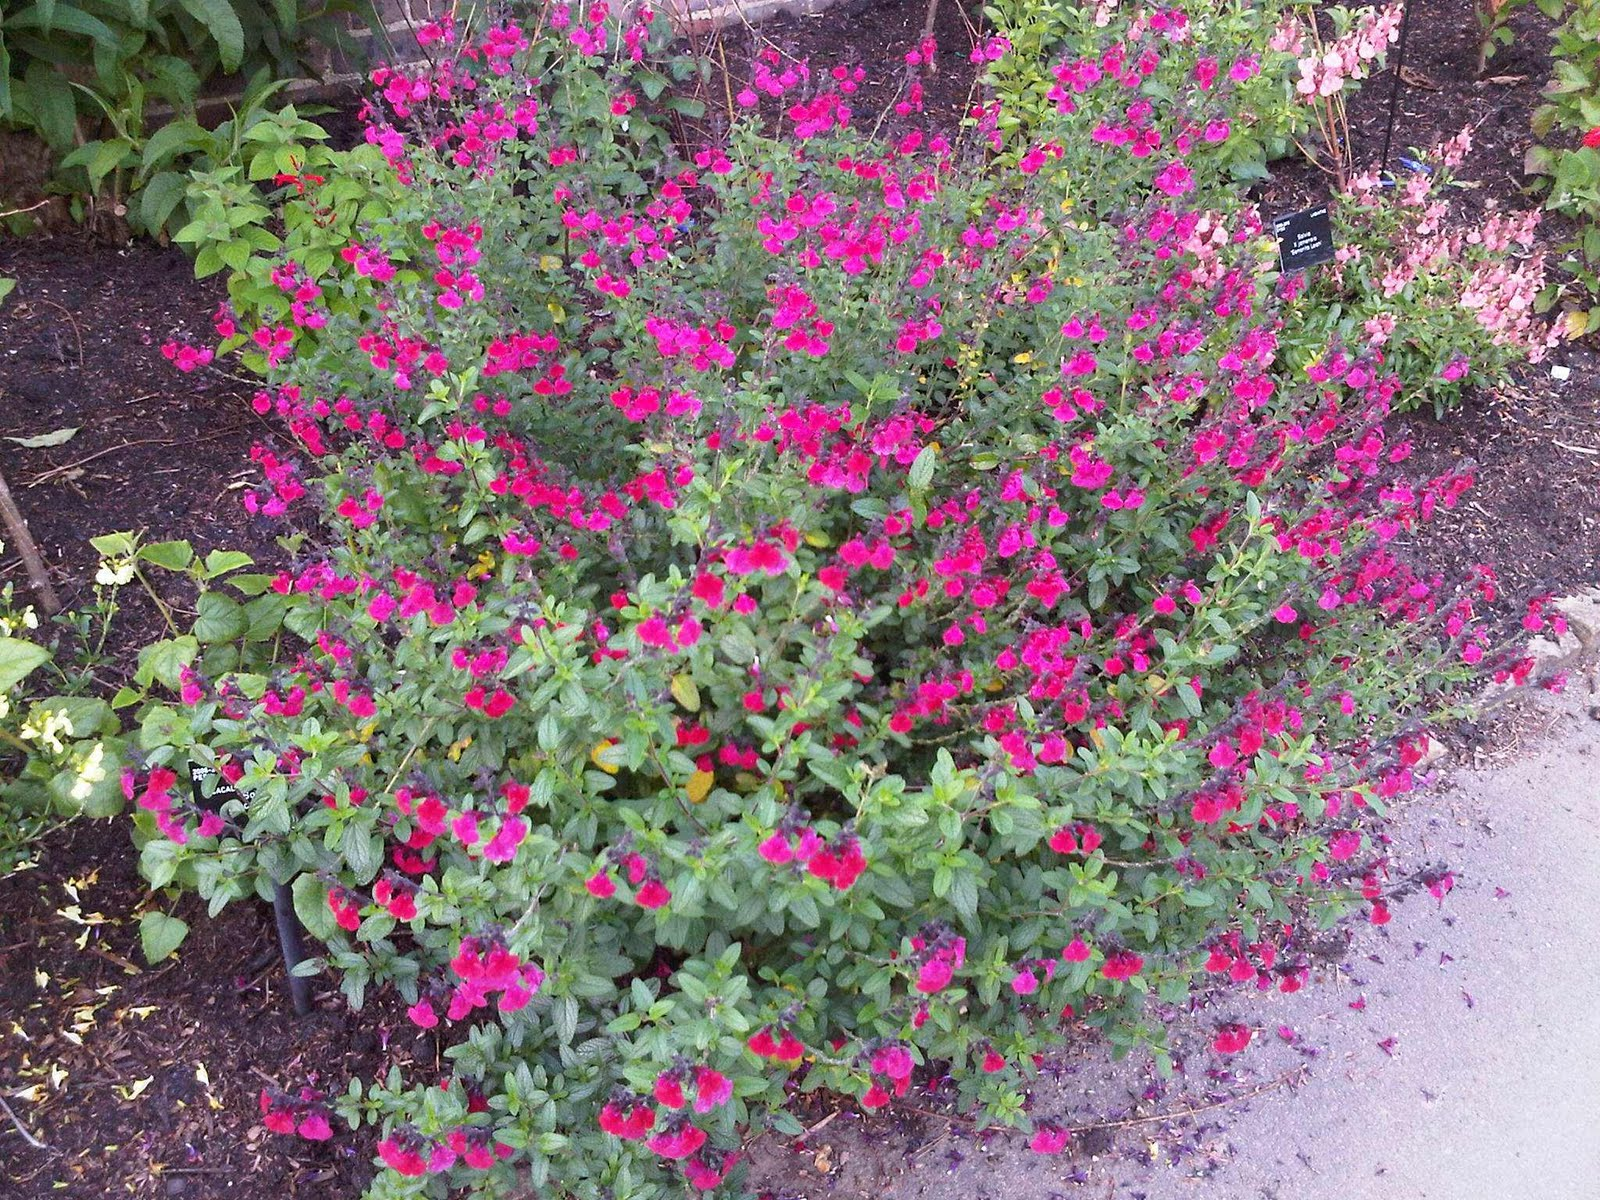 Talking Plants: Salvia salvo and salve